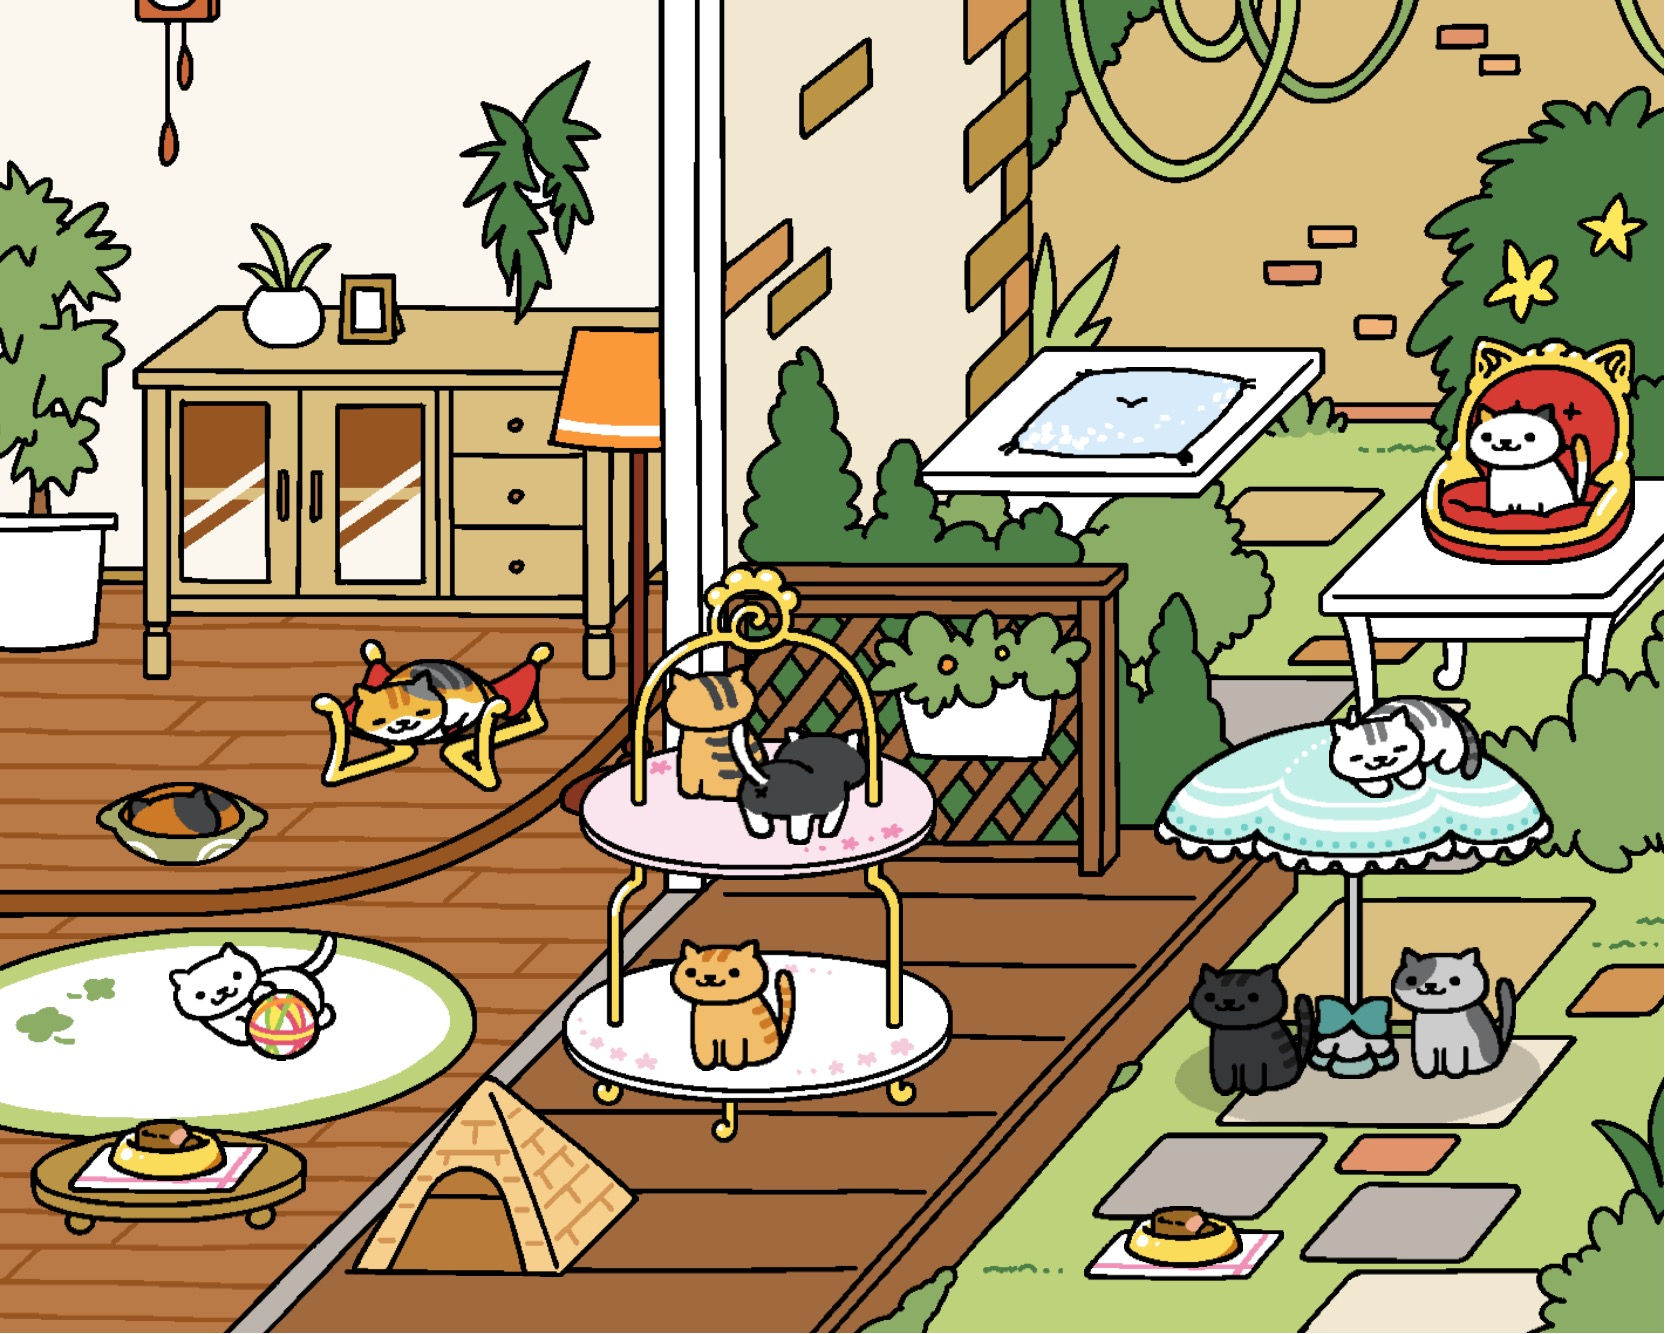 neko atsume update rustic style yard original